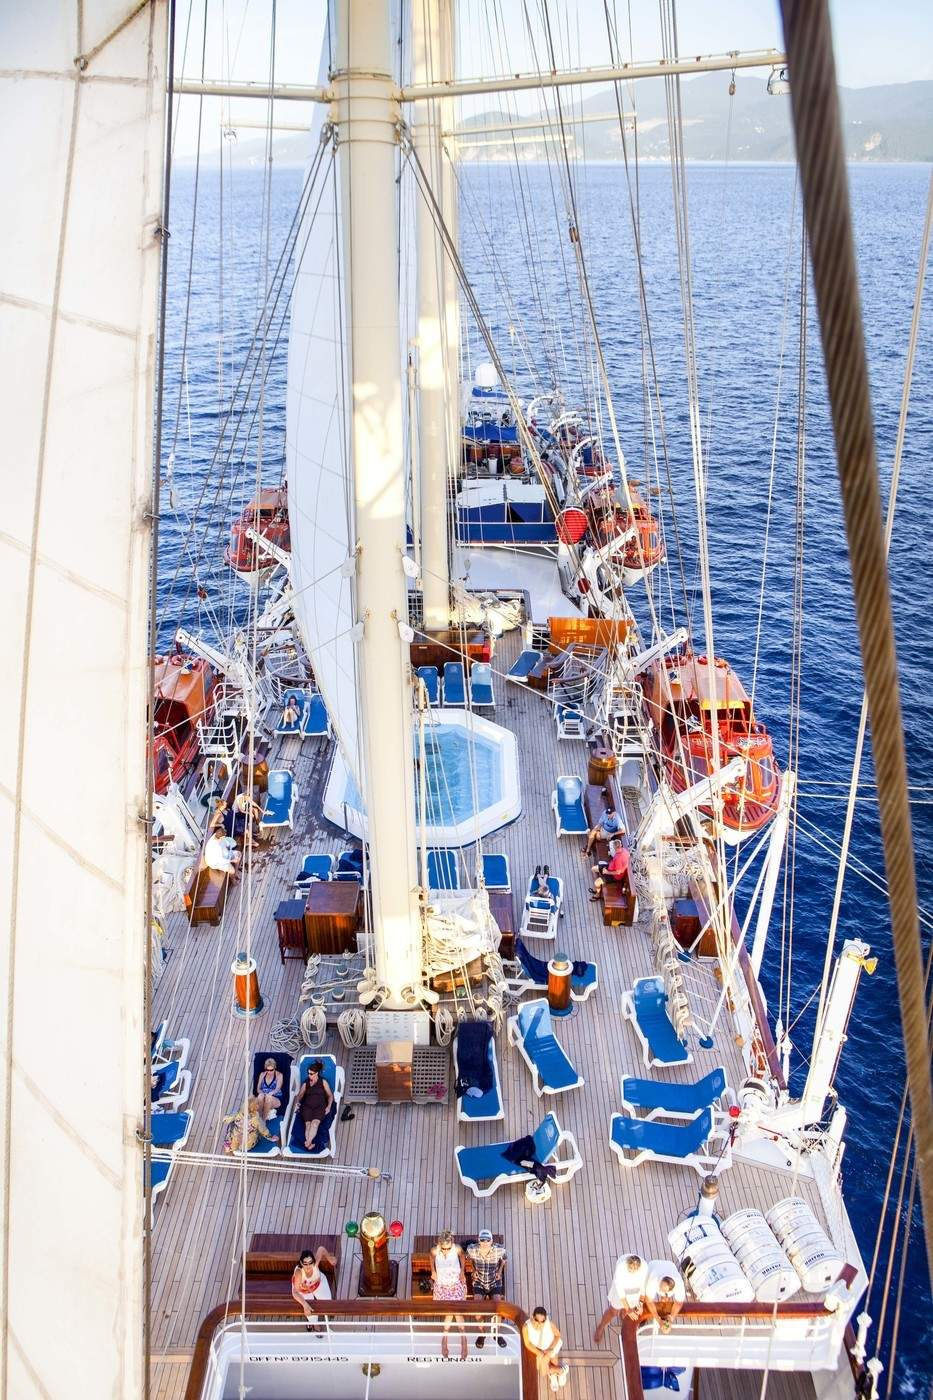 nautical_MG_2960STARCLIPPERS SCHIP